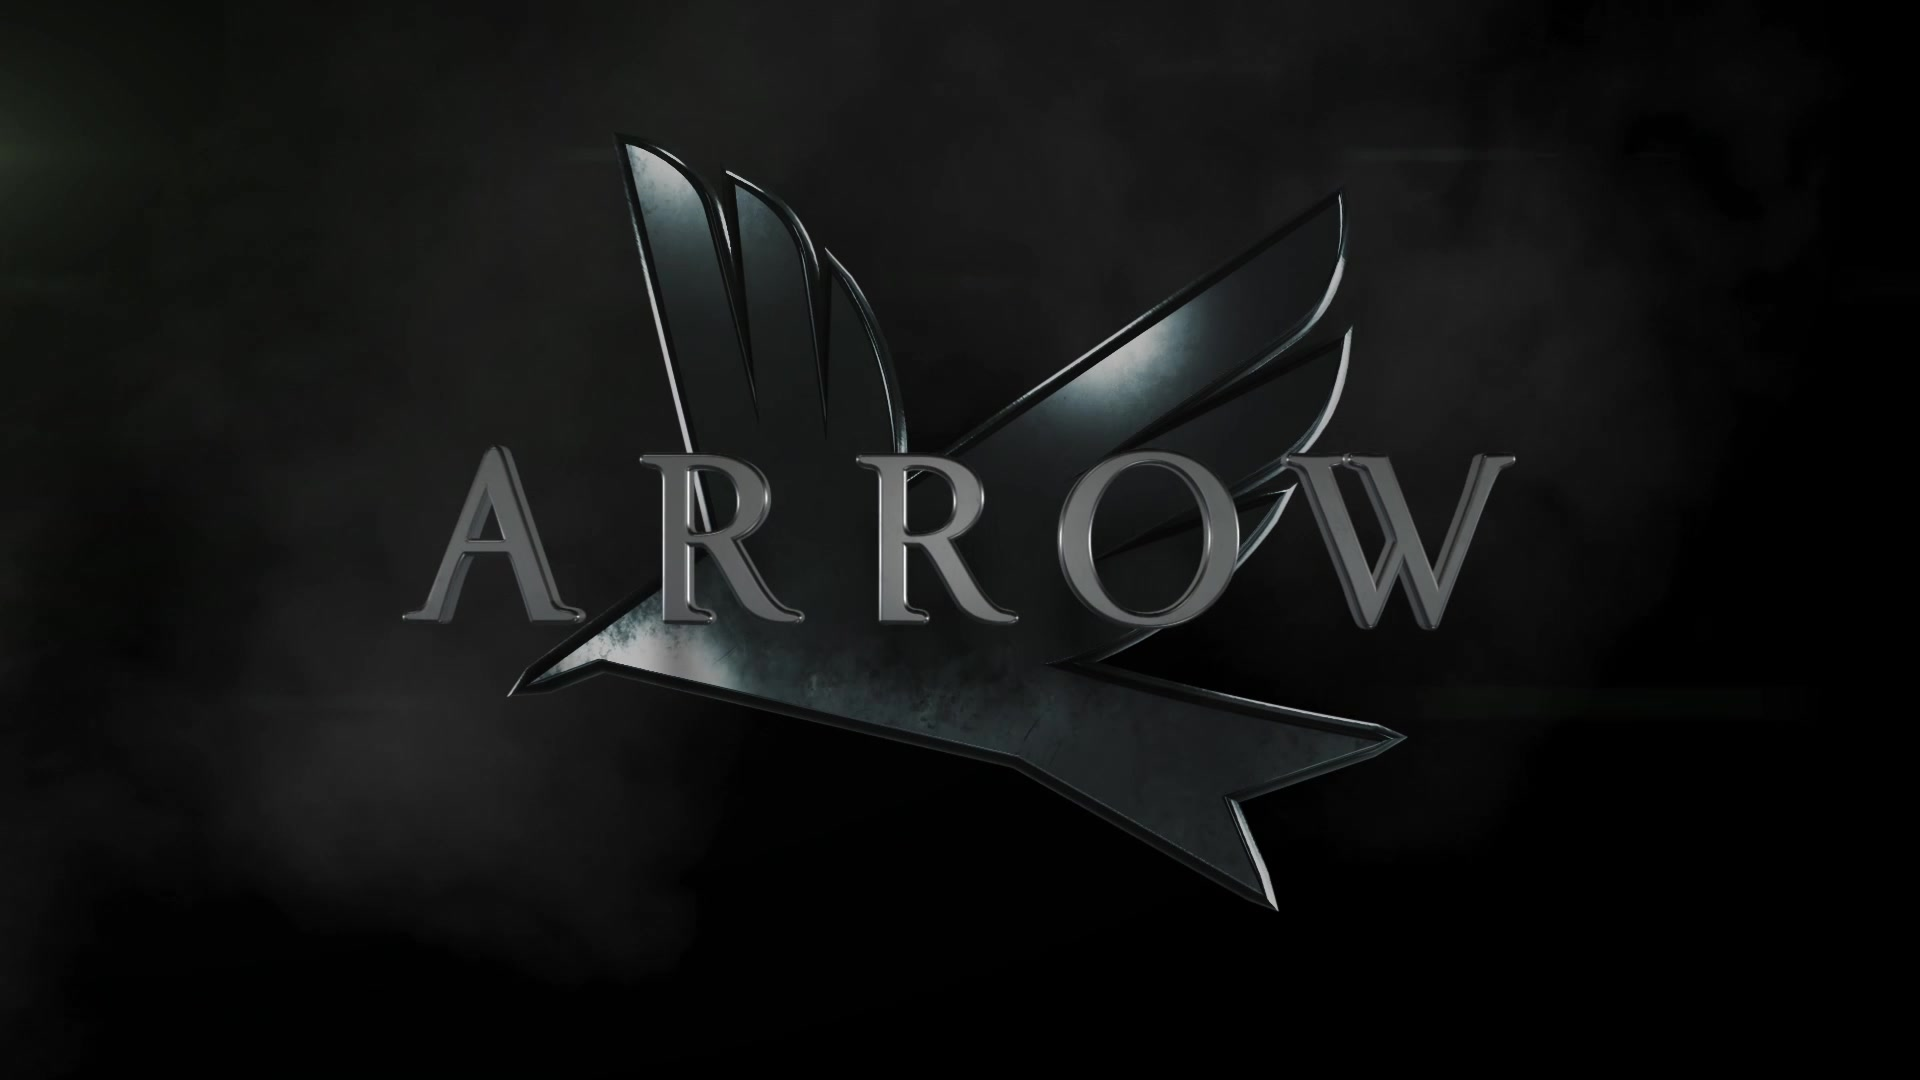 Arrow (TV Series) Episode: Lost Canary